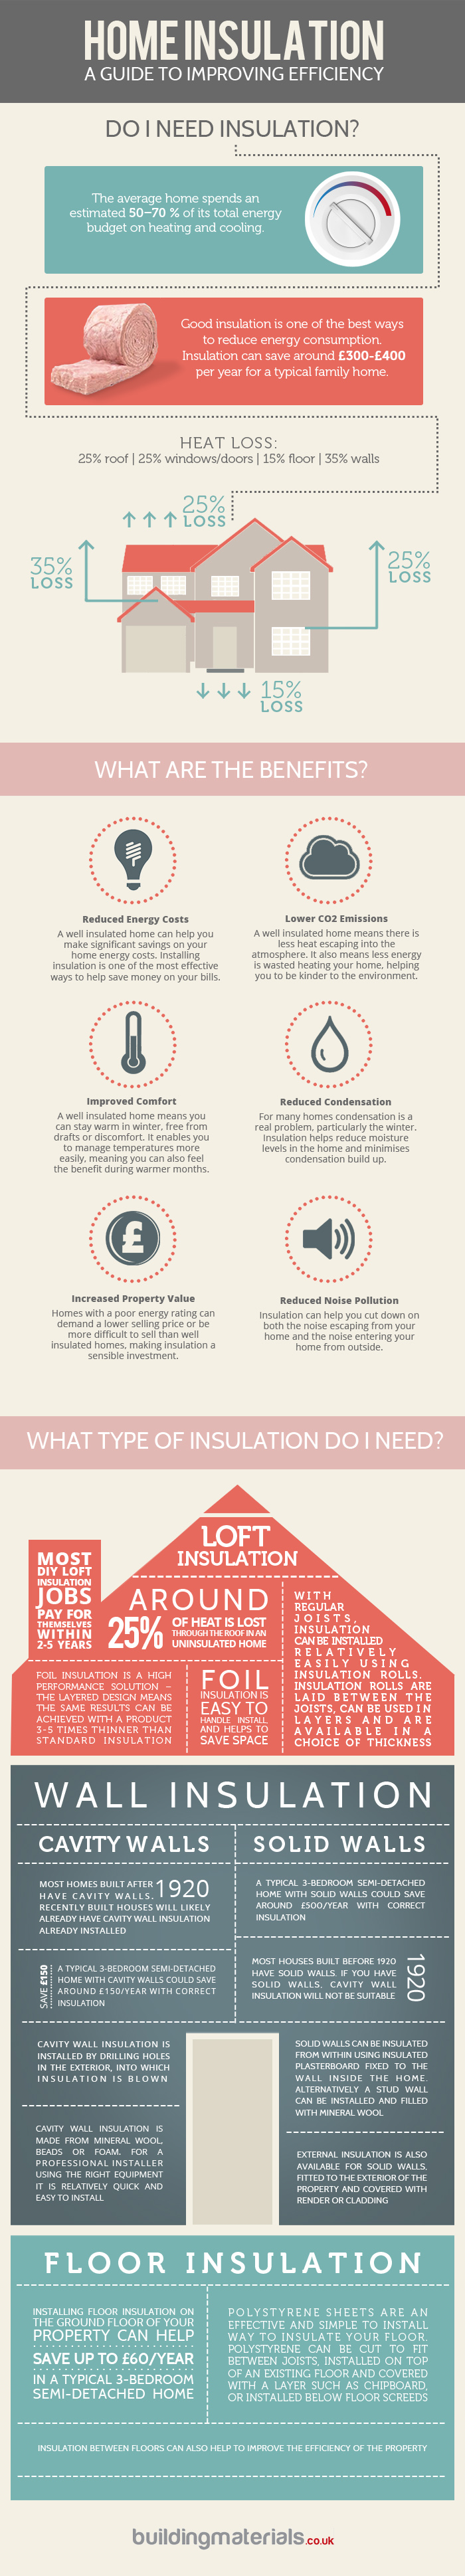 Home Insulation 101-Infographic